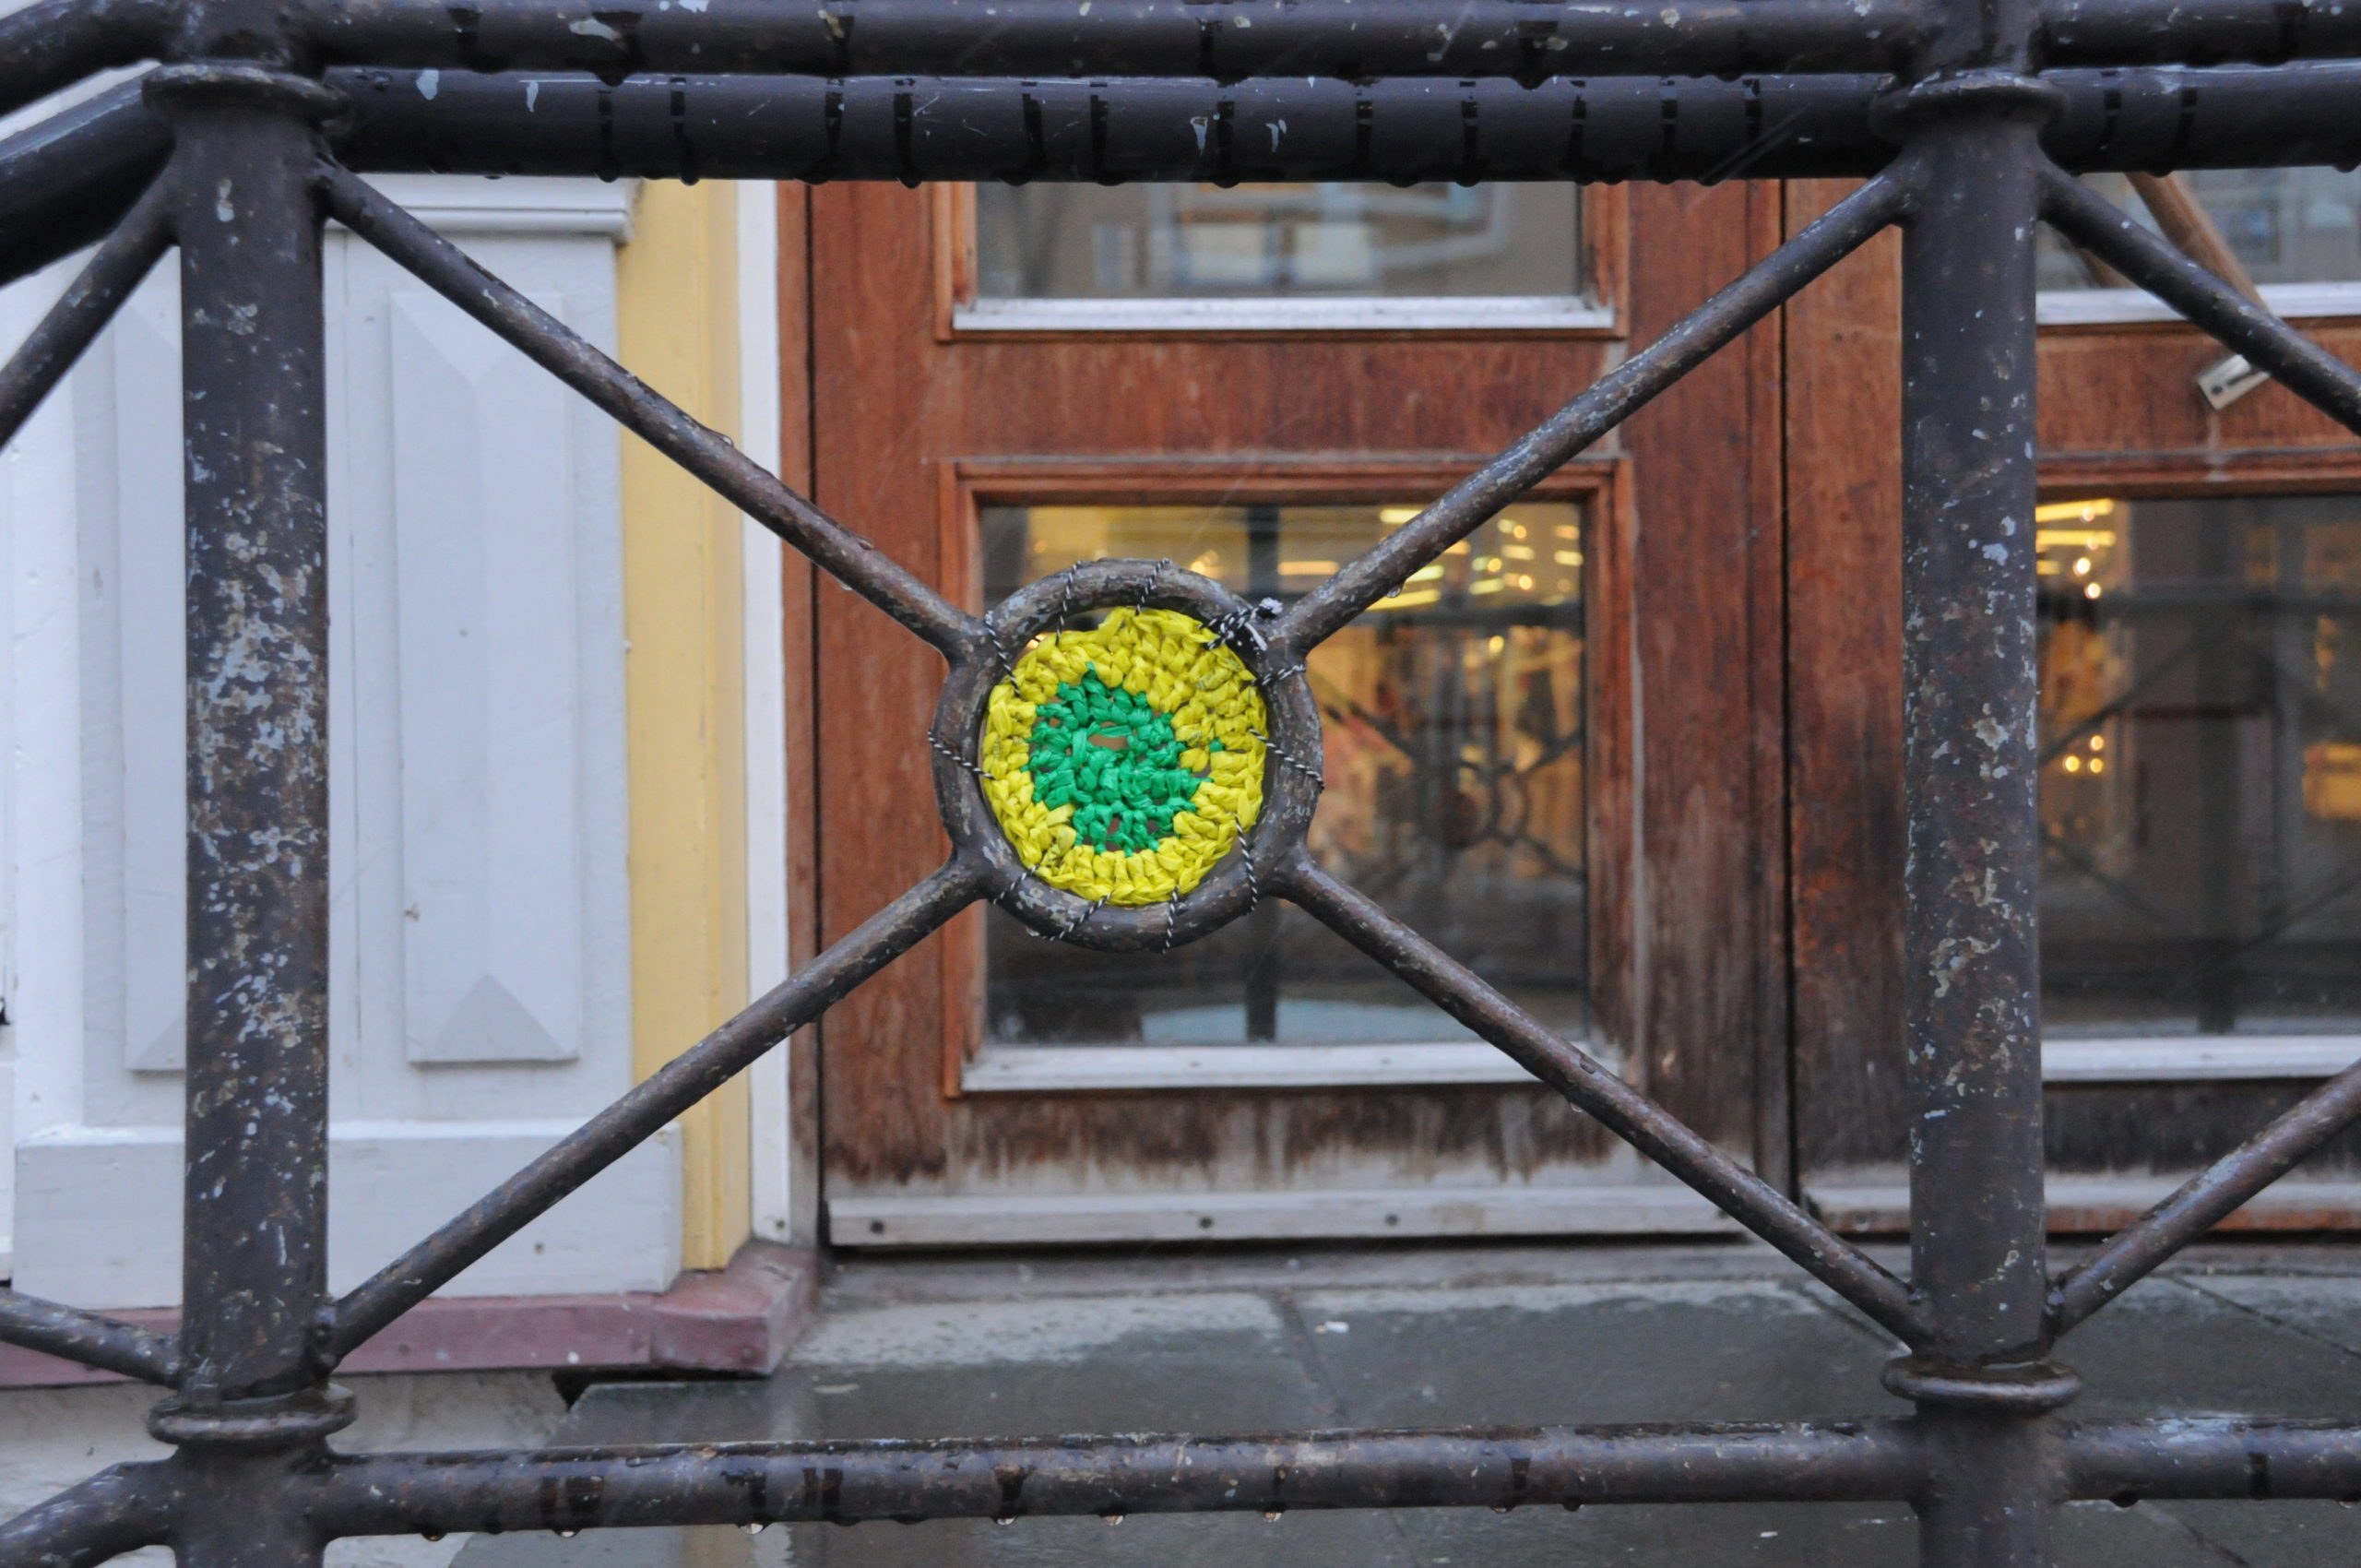 A piece of yellow and green crochet is set into a metal railing. In the background is a wooden door that leads into the building.